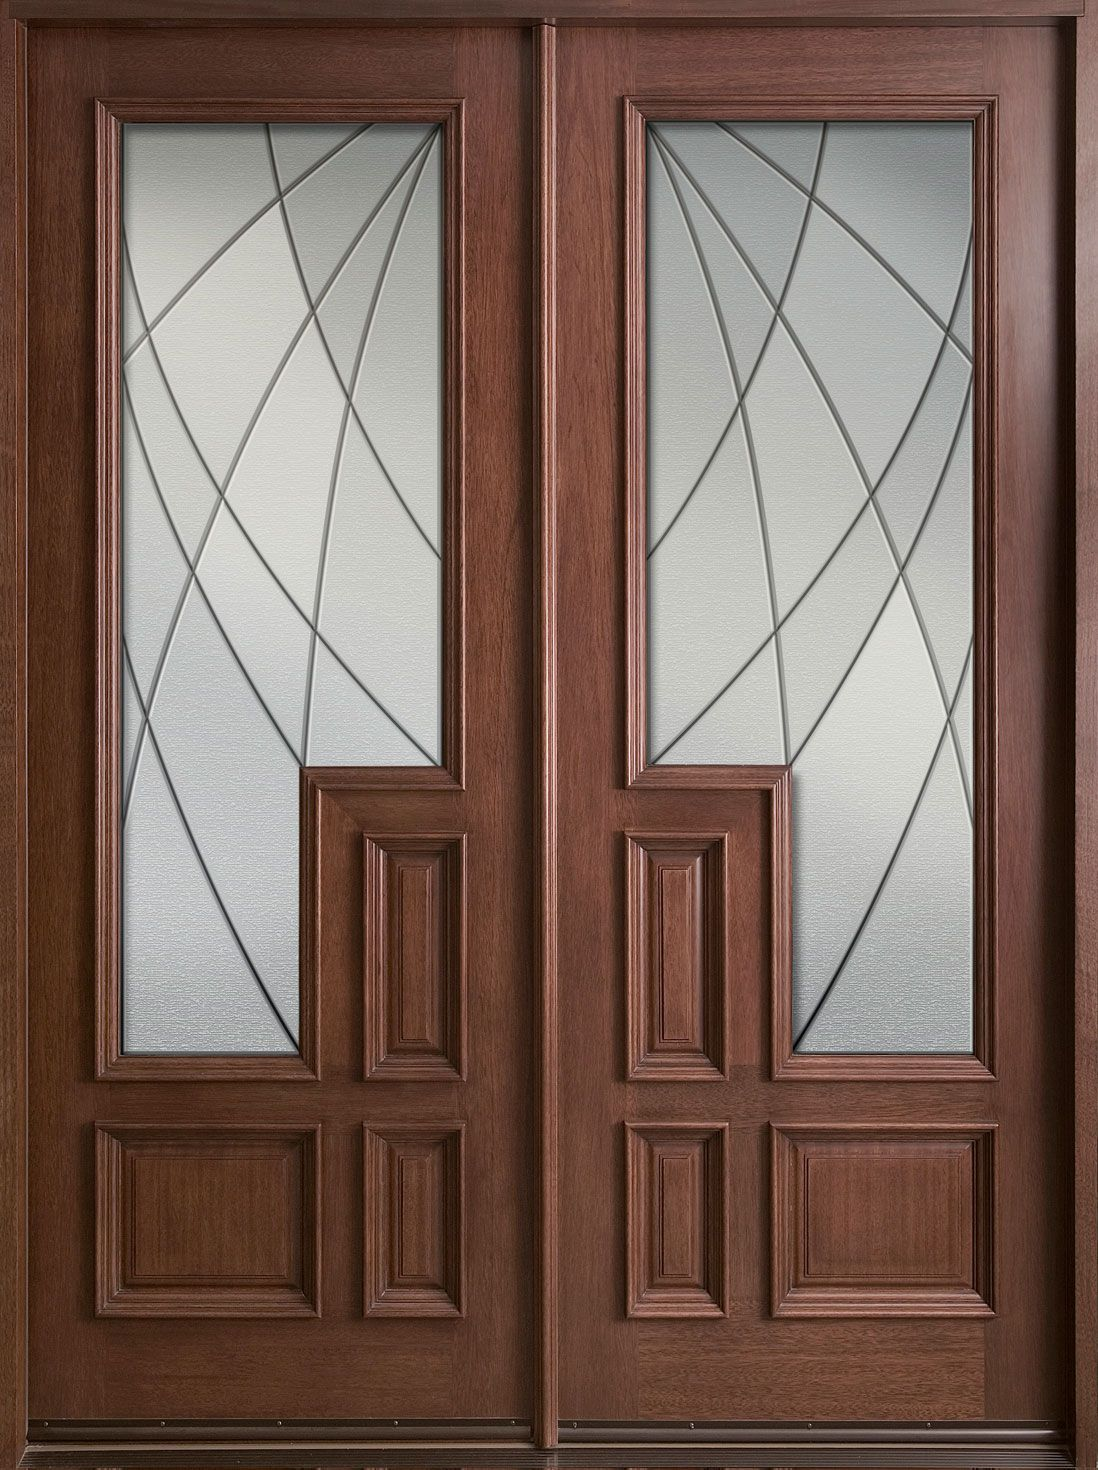 Inspiring double fiberglass entry door as furniture for for Double doors exterior for homes